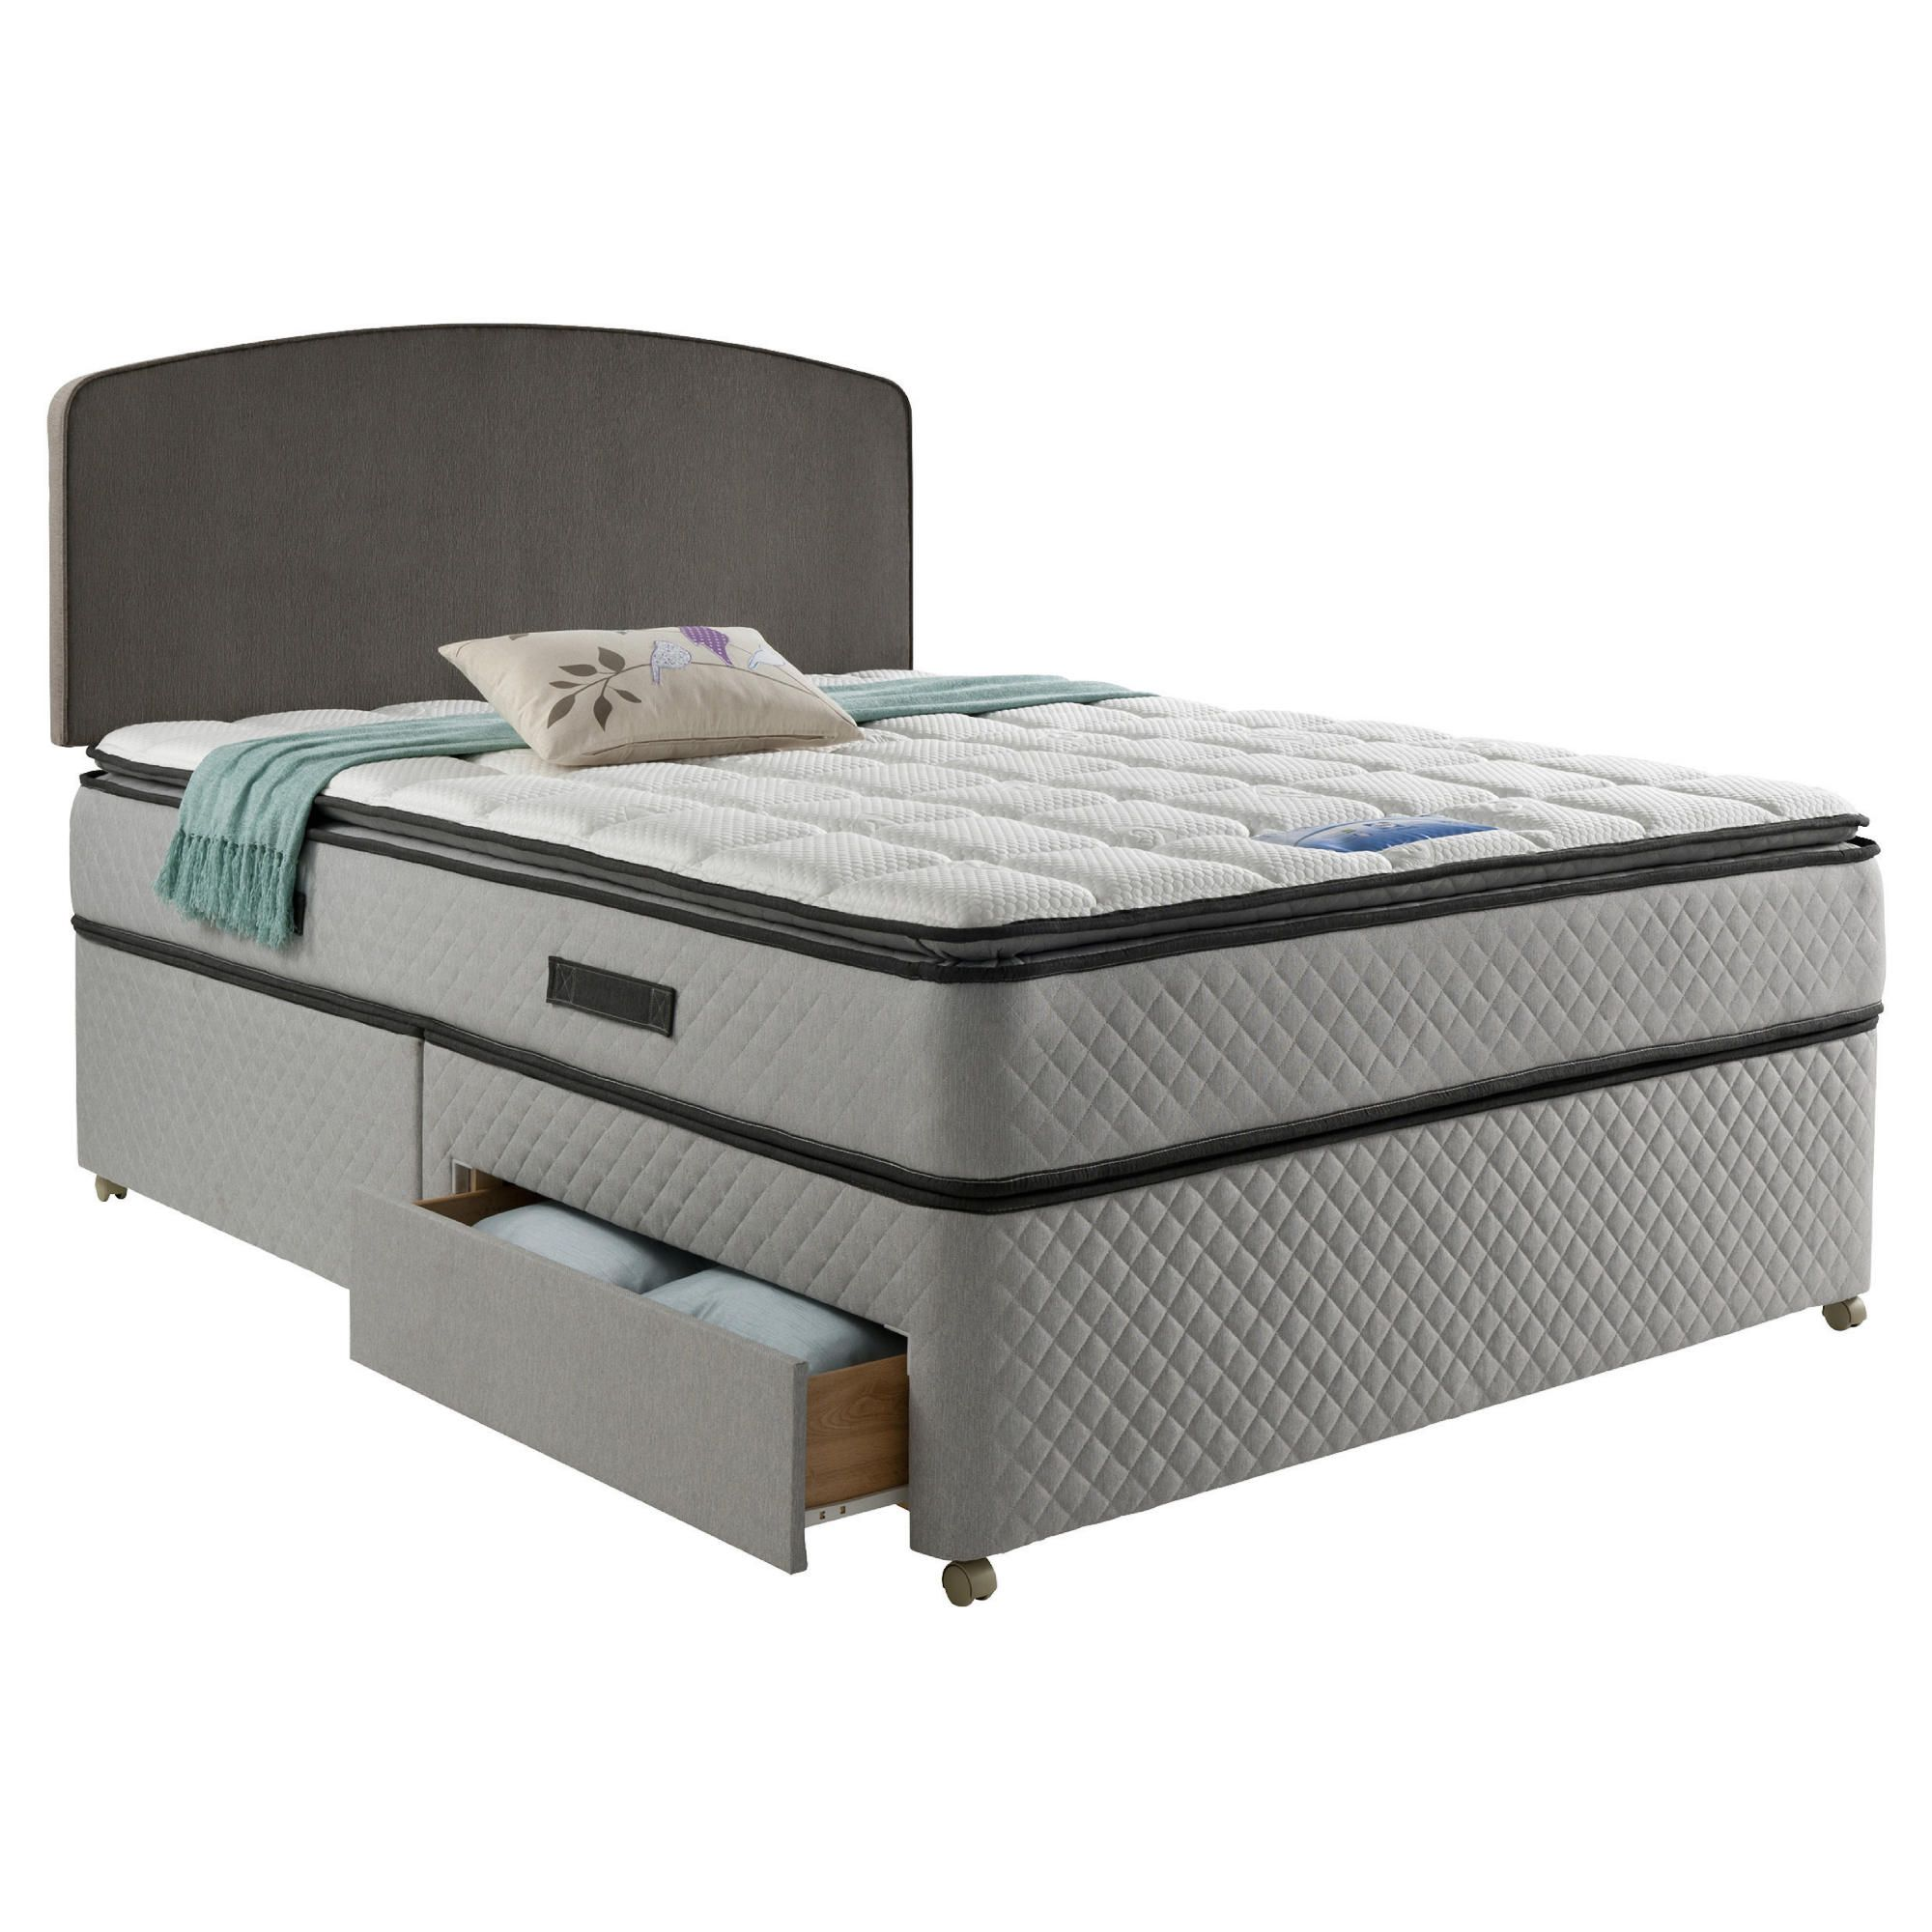 Sealy Pillowtop King Size 2 Drawer Divan Charcoal at Tesco Direct